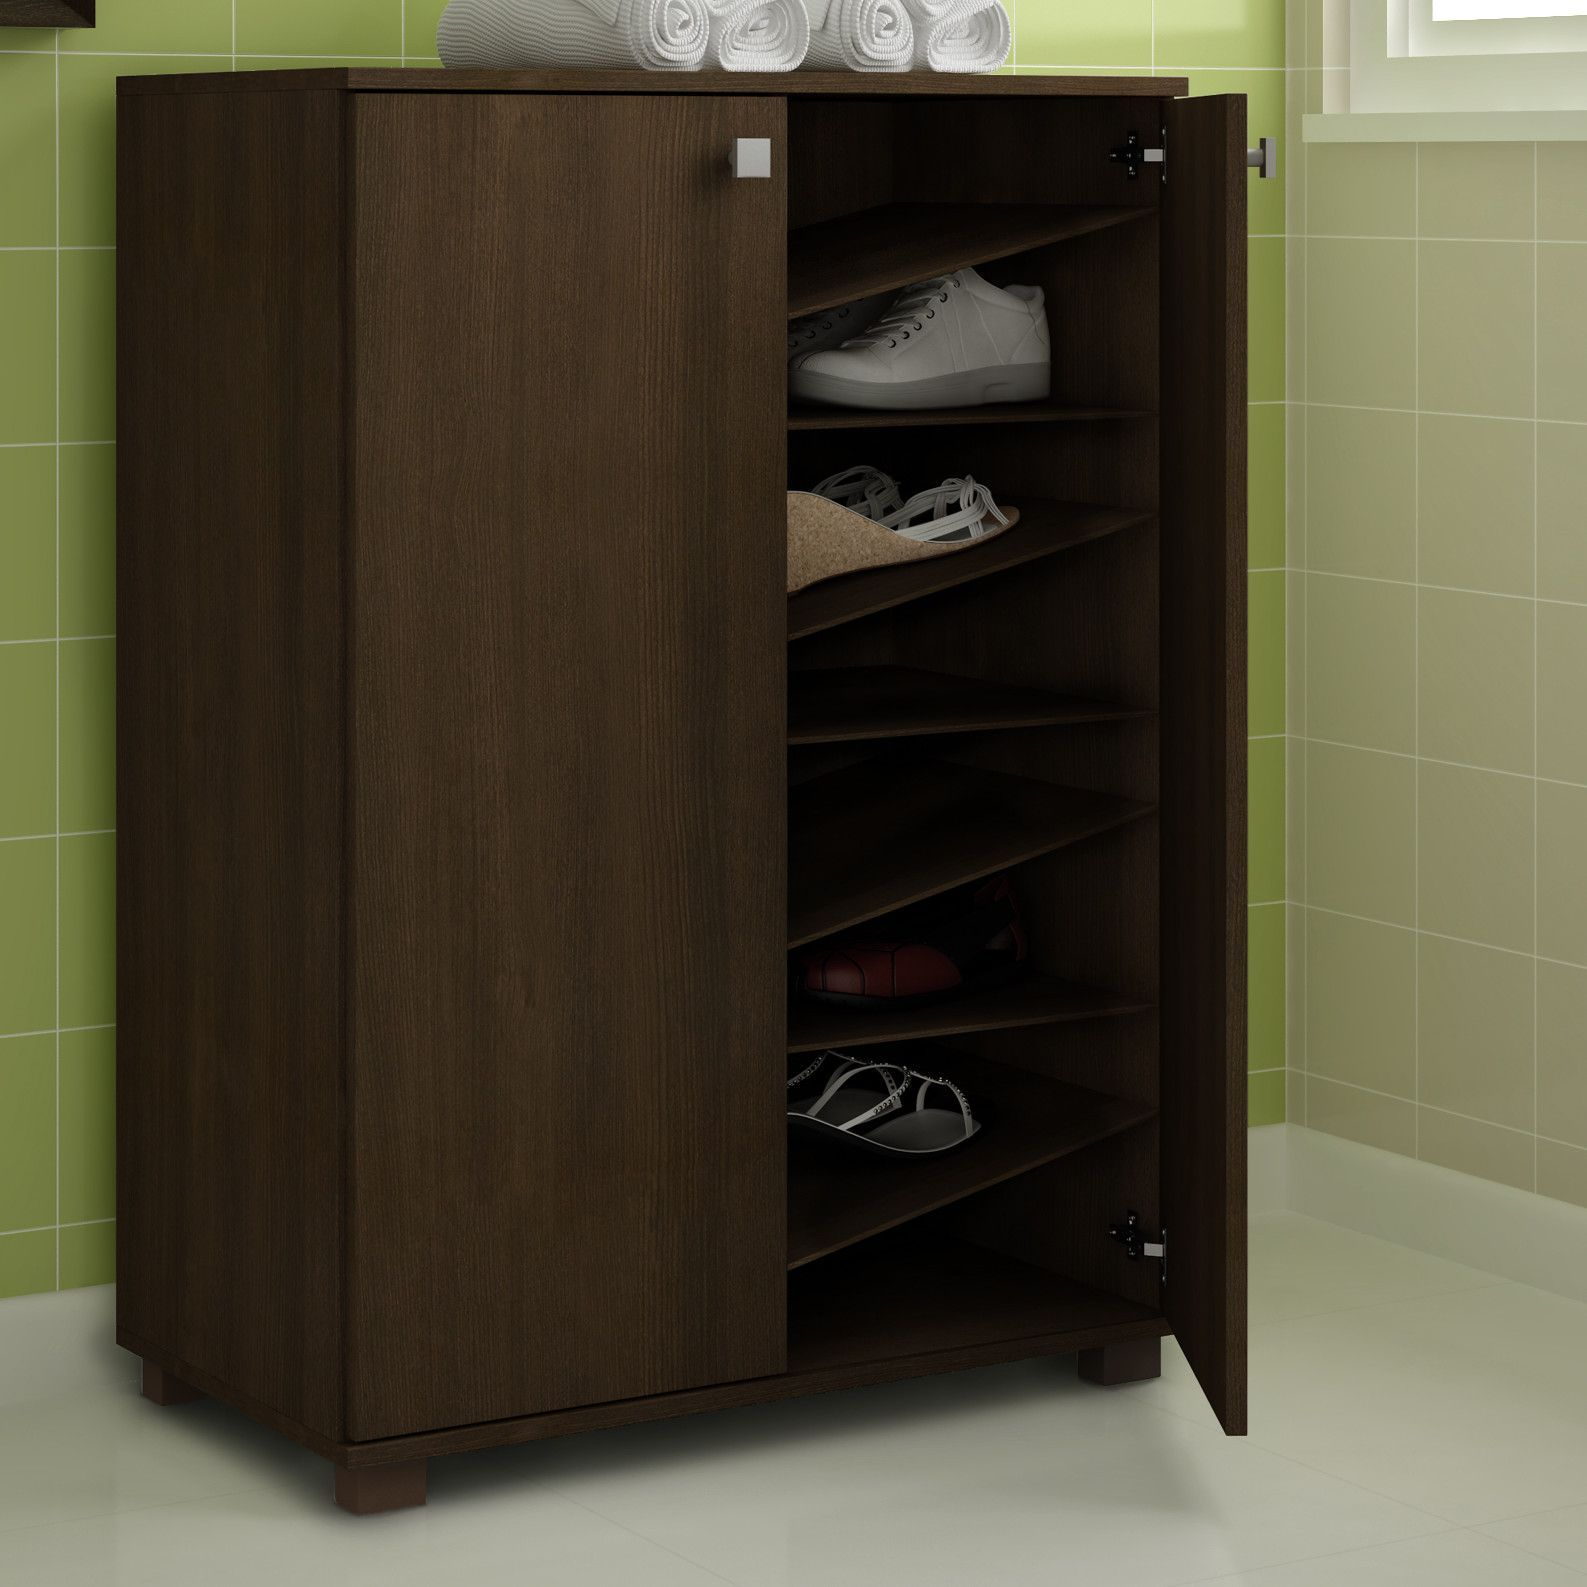 Narrow hallway storage solutions  Shoe Closet  Products  Pinterest  Products